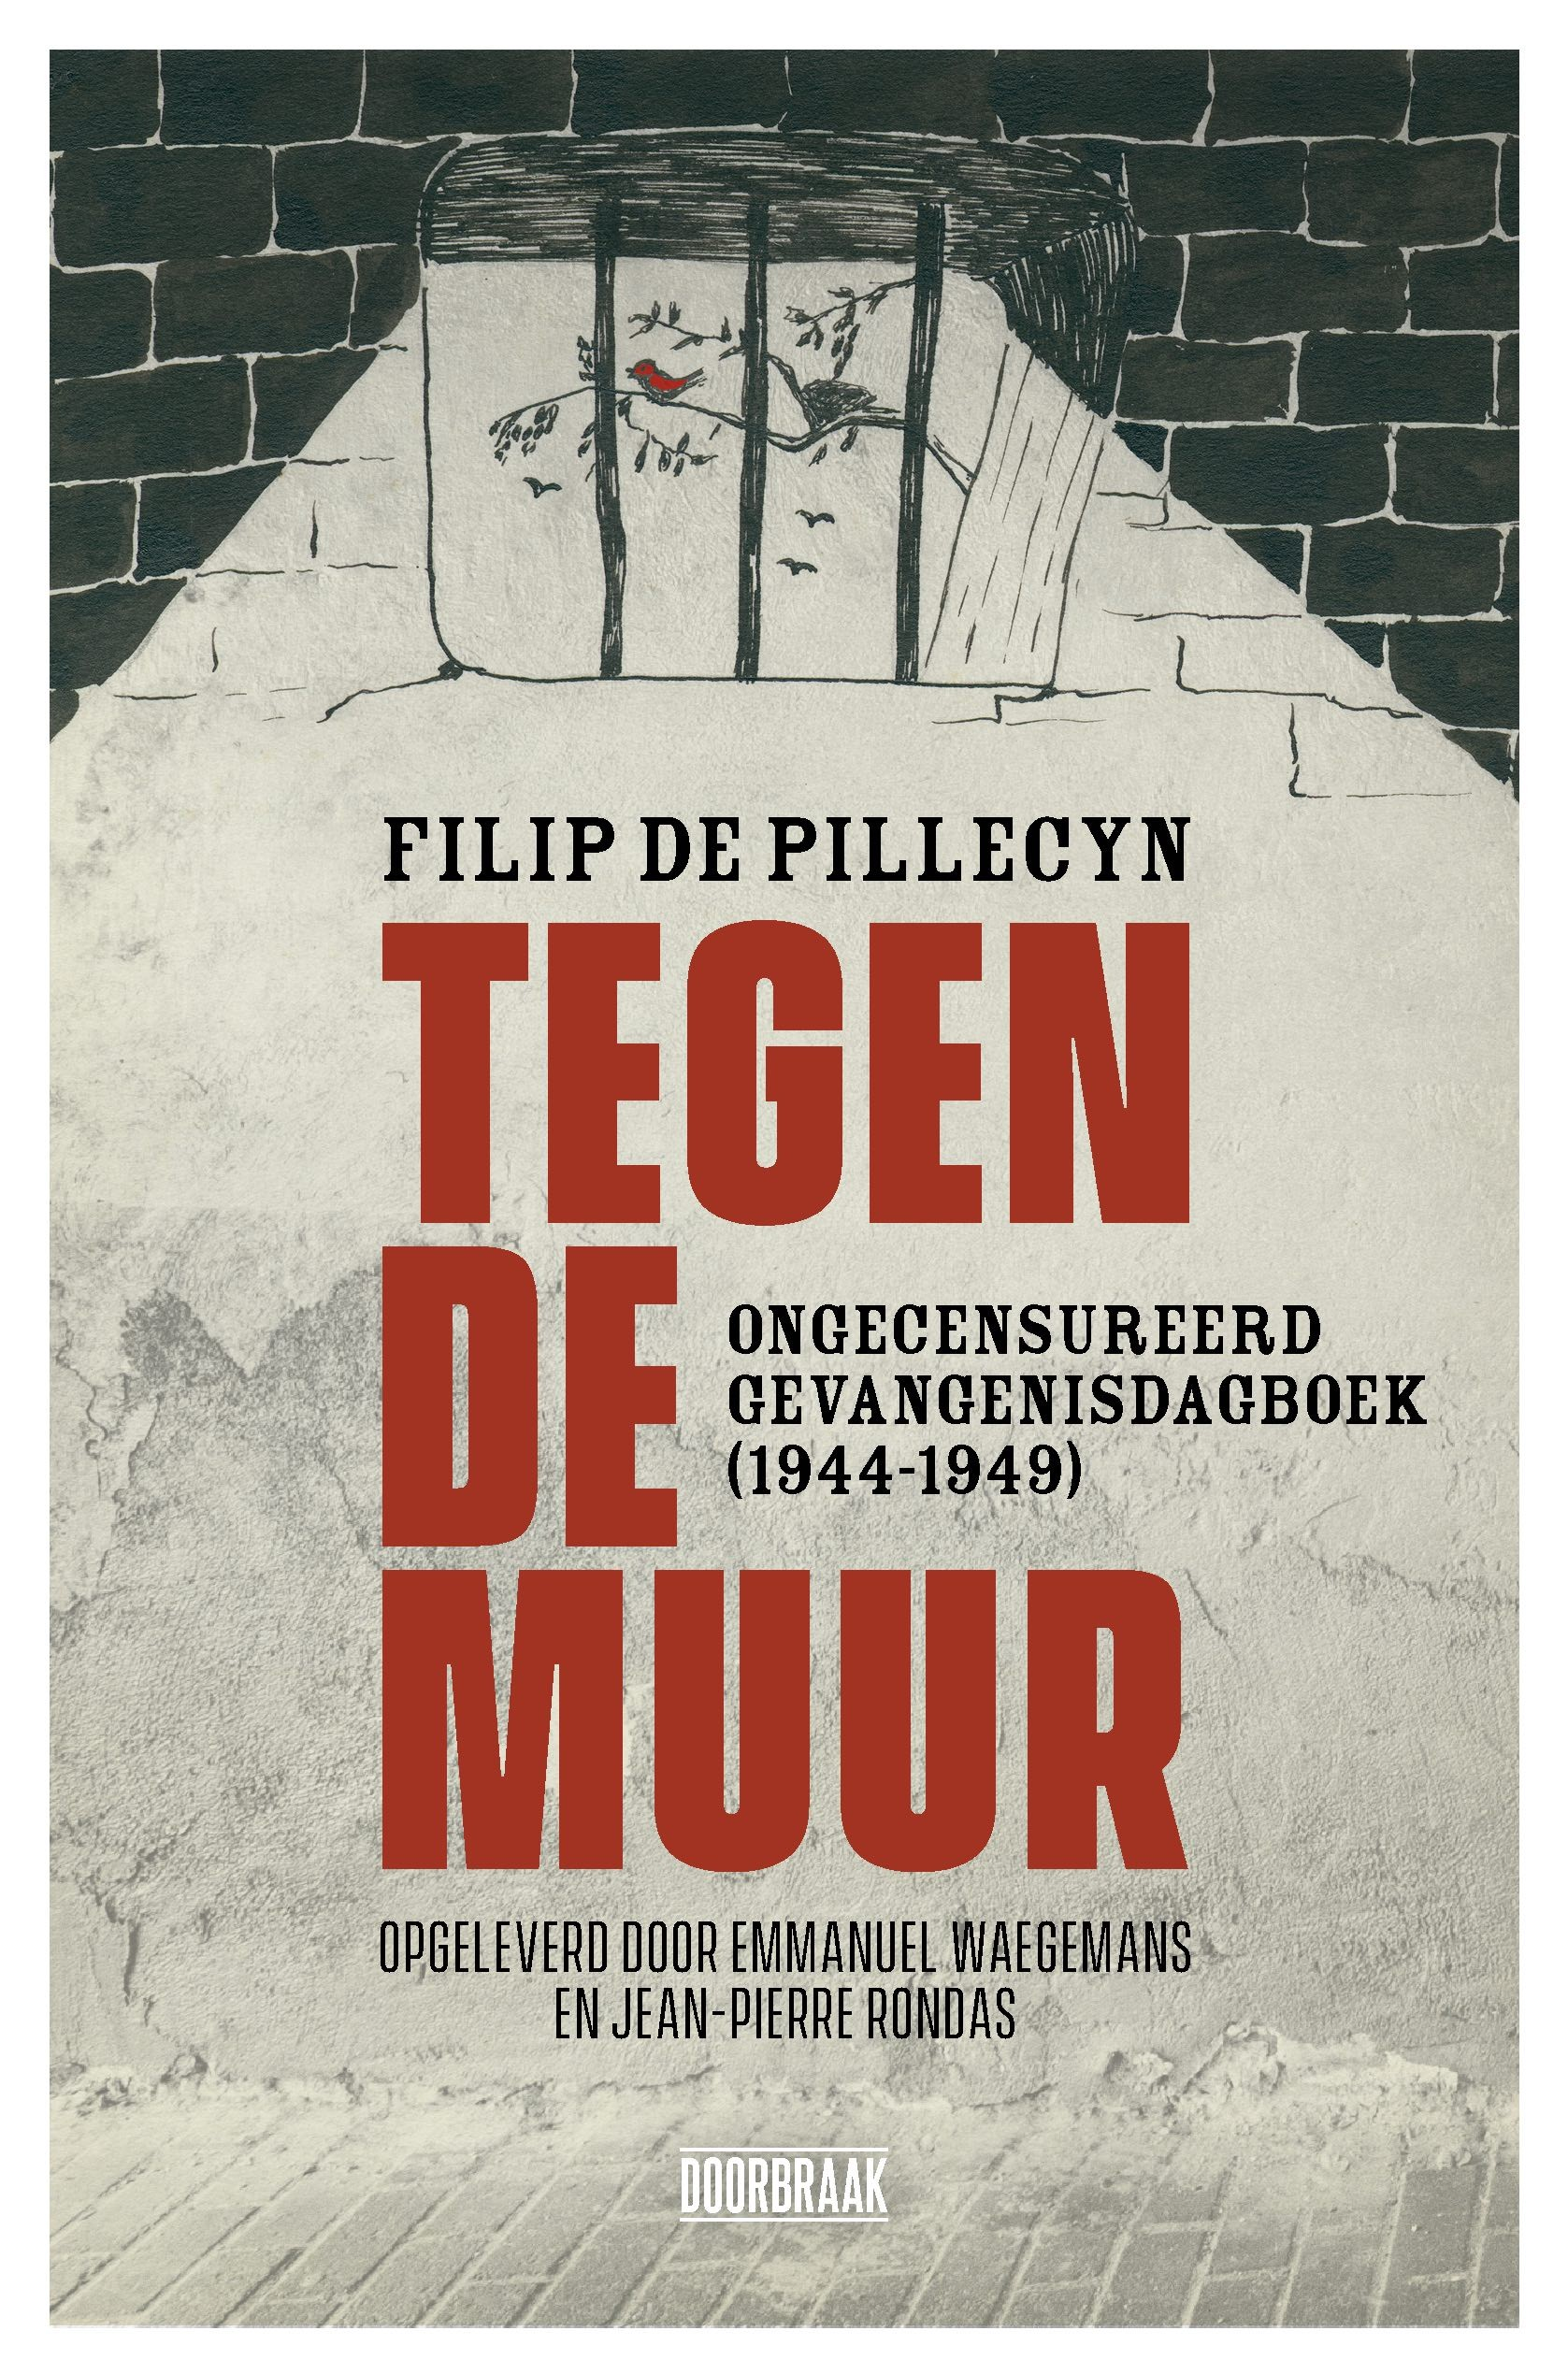 Het land van Filip De Pillecyn